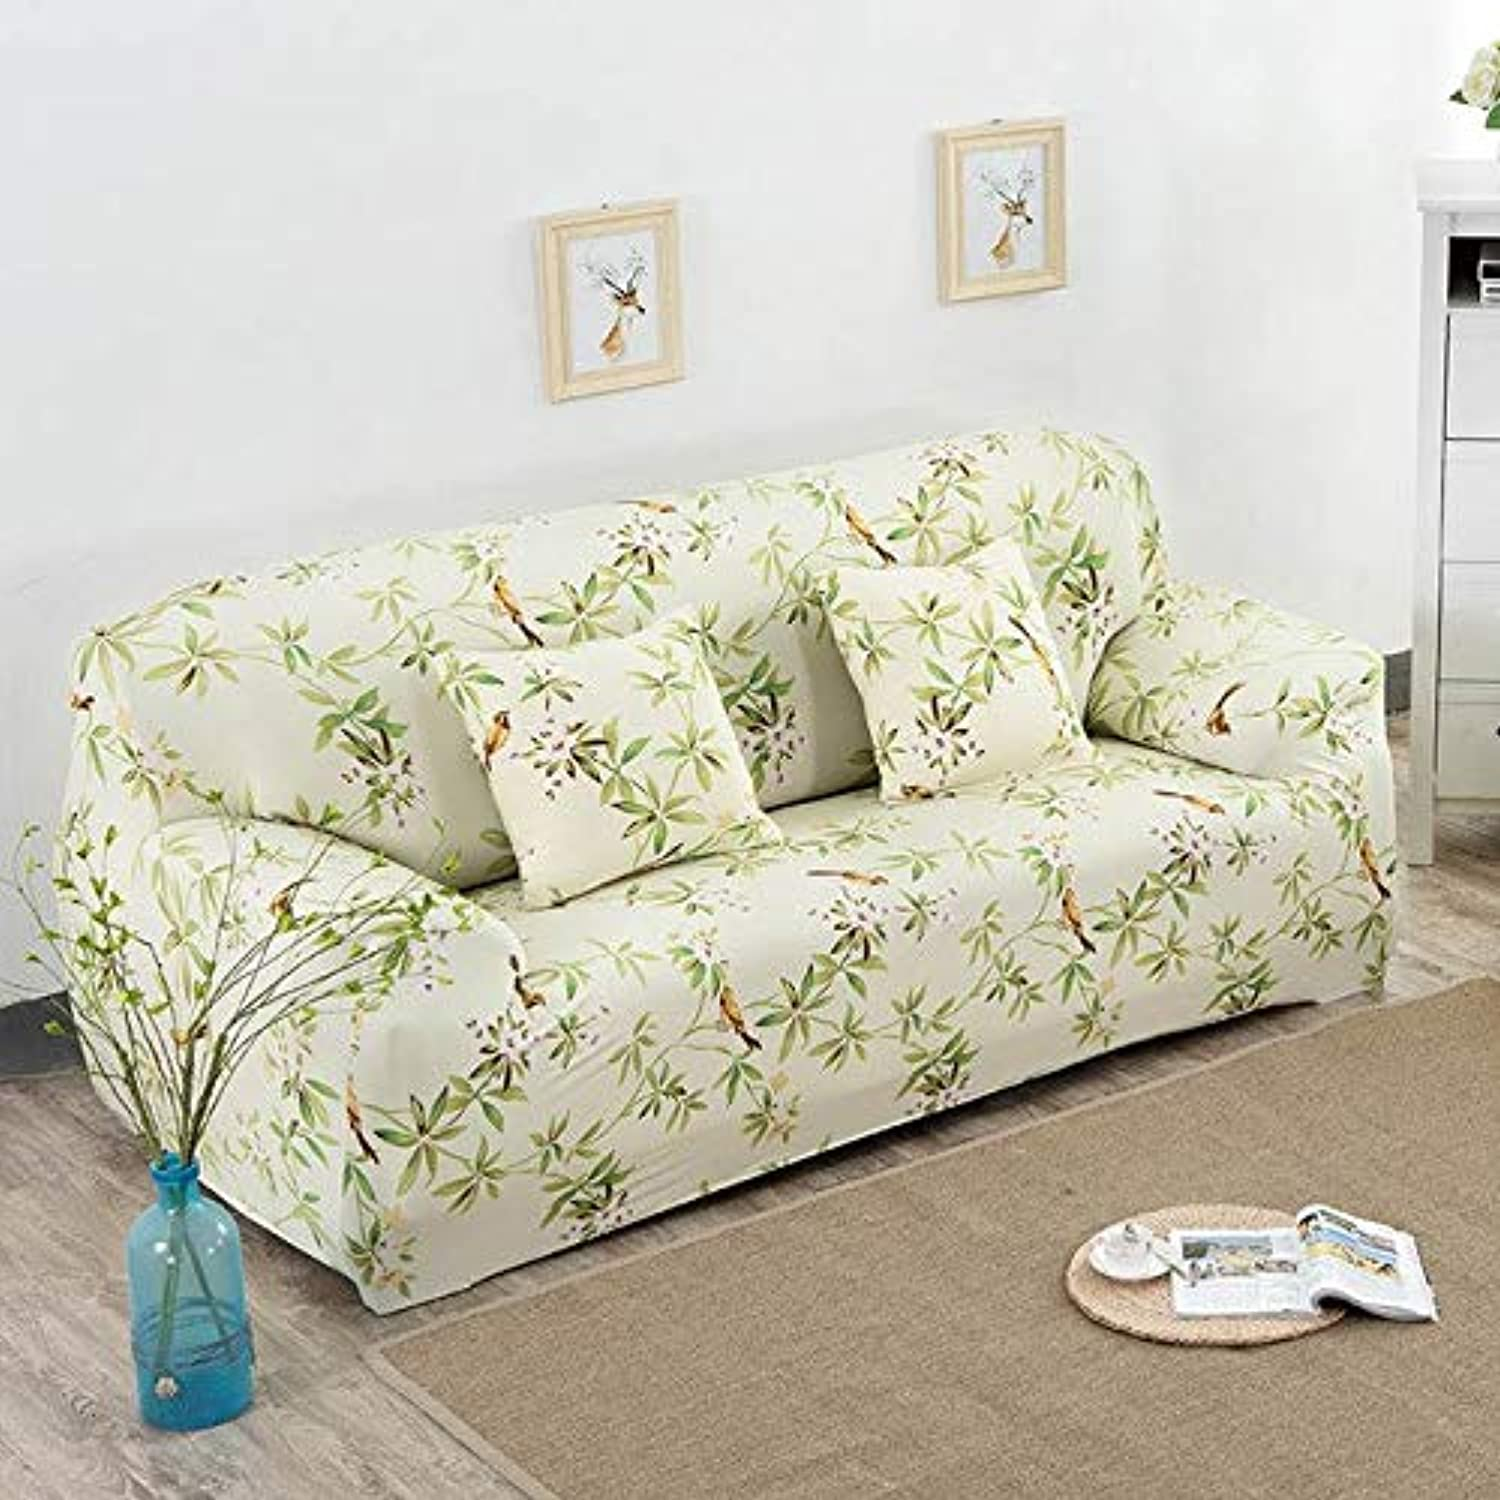 Universal Three Seater Sofa Cover for Lig Room Tight Seat Cover Slipcover Stretch Couch Cover on The Corner Sofa Blanket   5, Two Seater